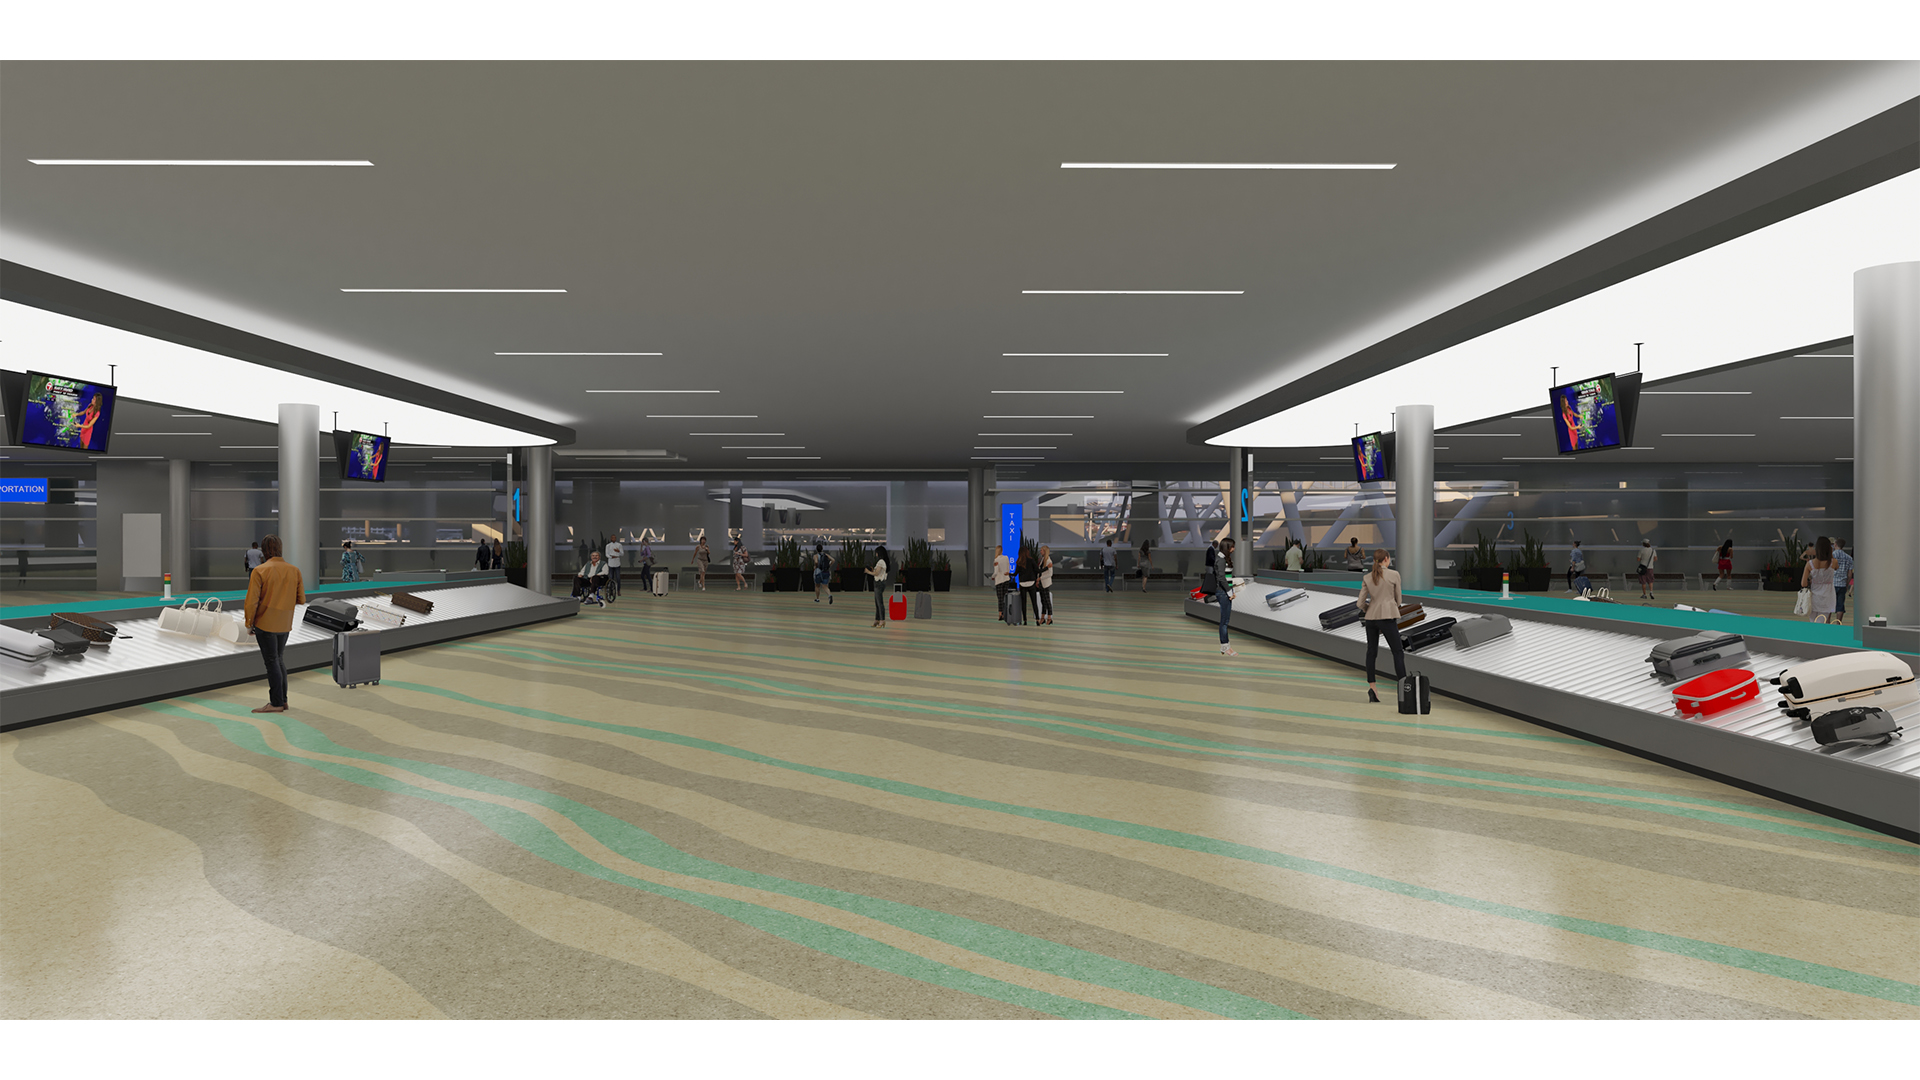 IMD_Rendering_Aviation_FLL_43_Baggage_Claim.jpg